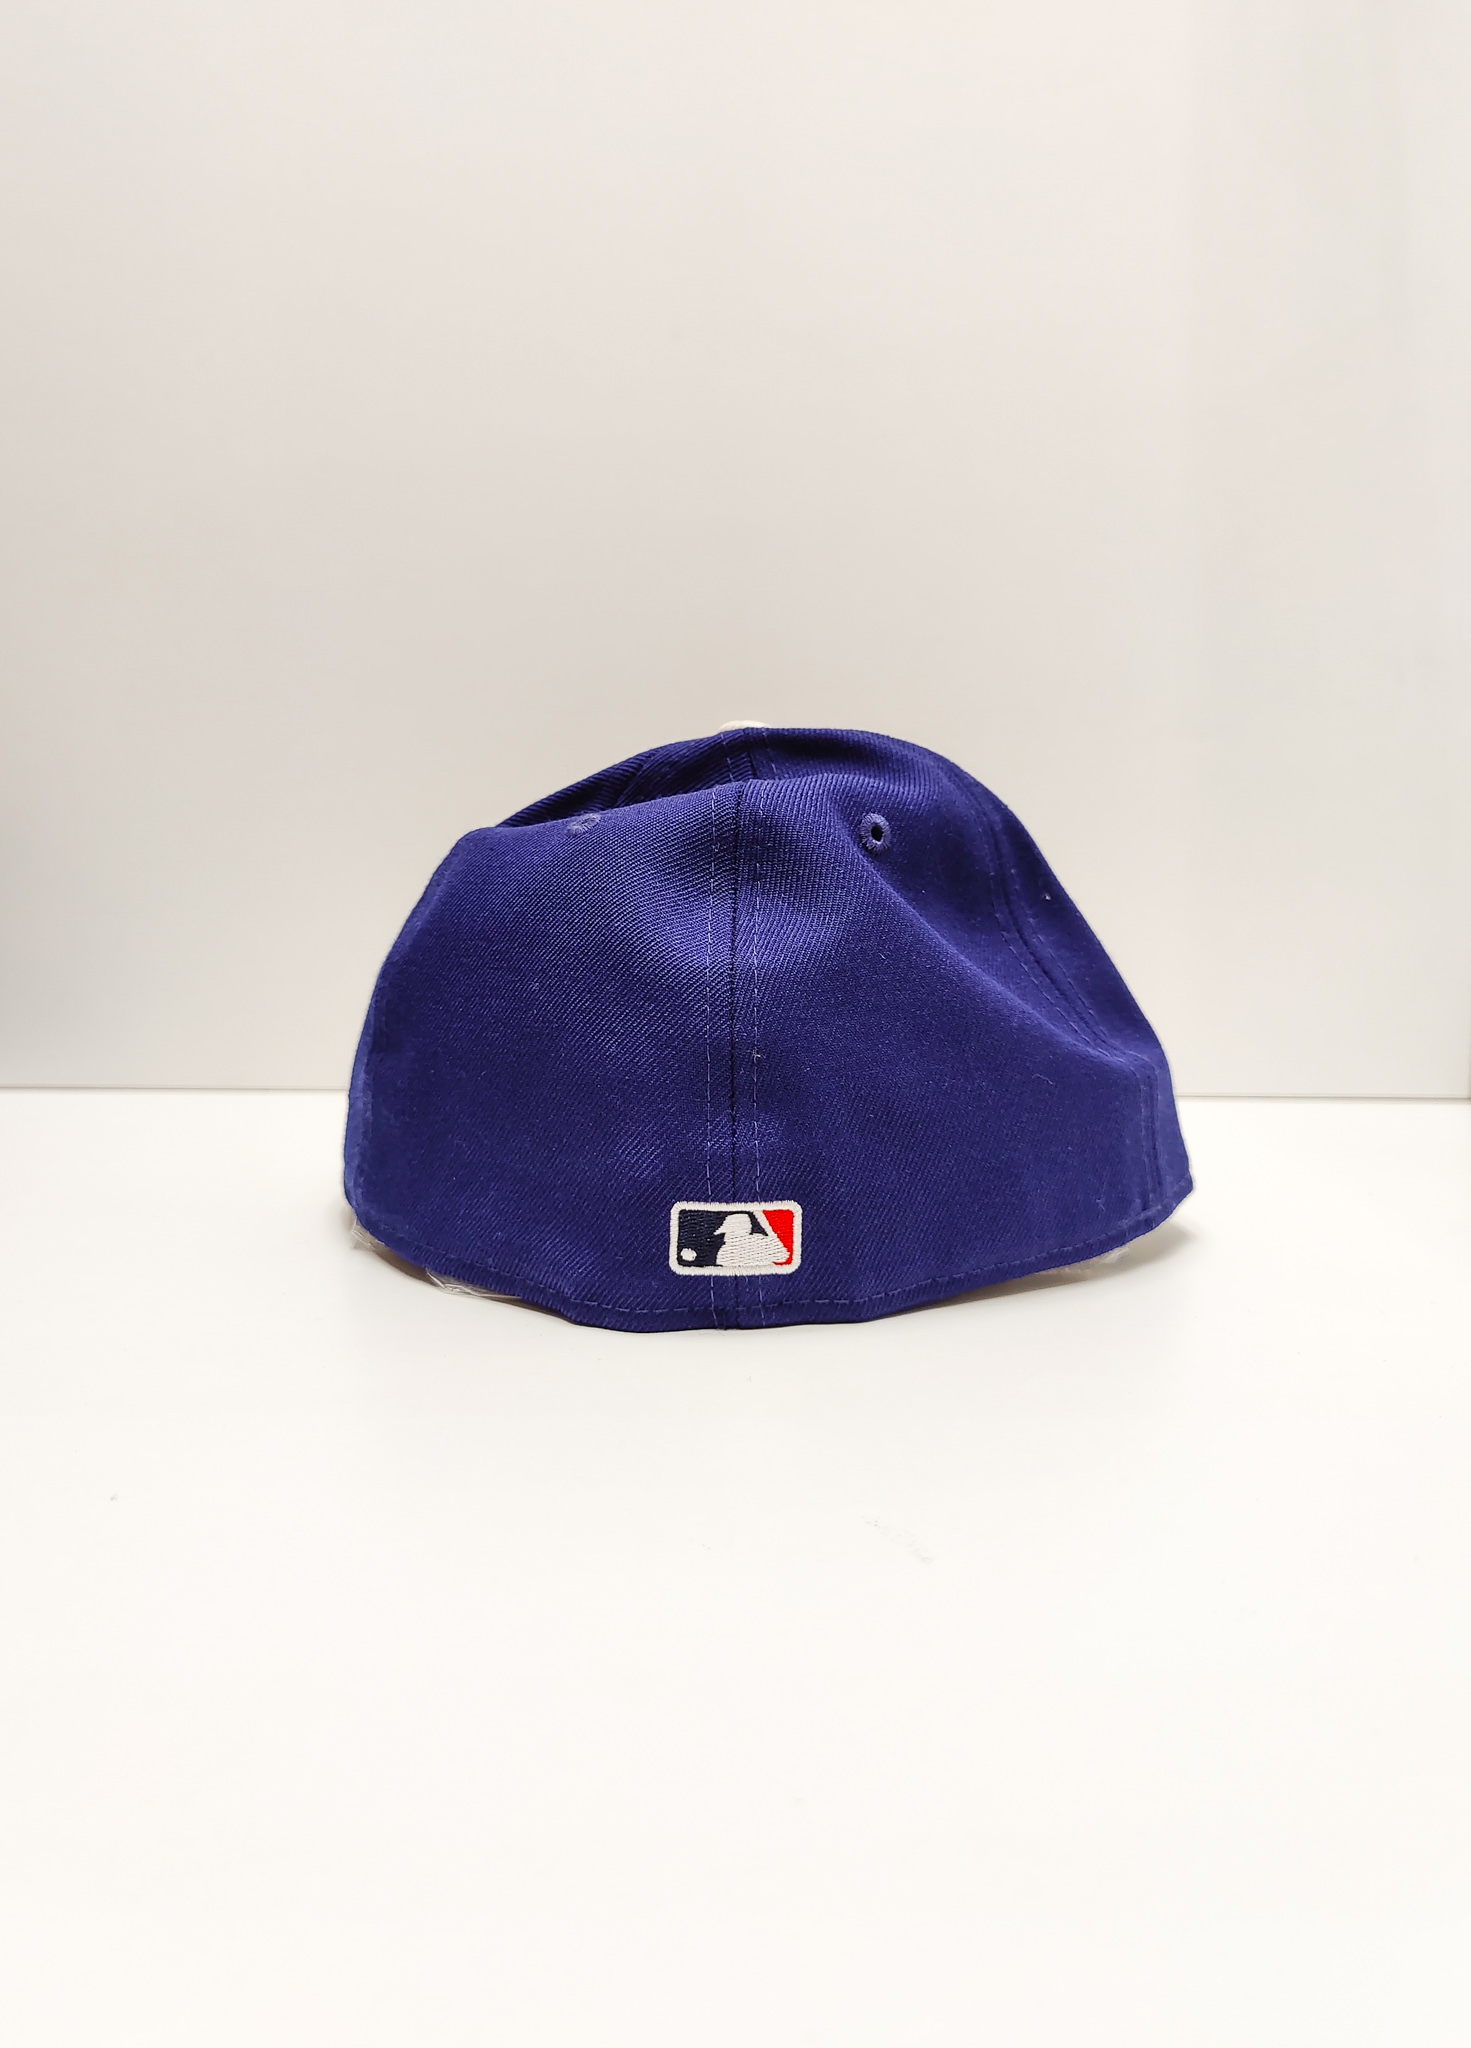 New Era 59Fifty Heritage Series Los Angeles Dodgers